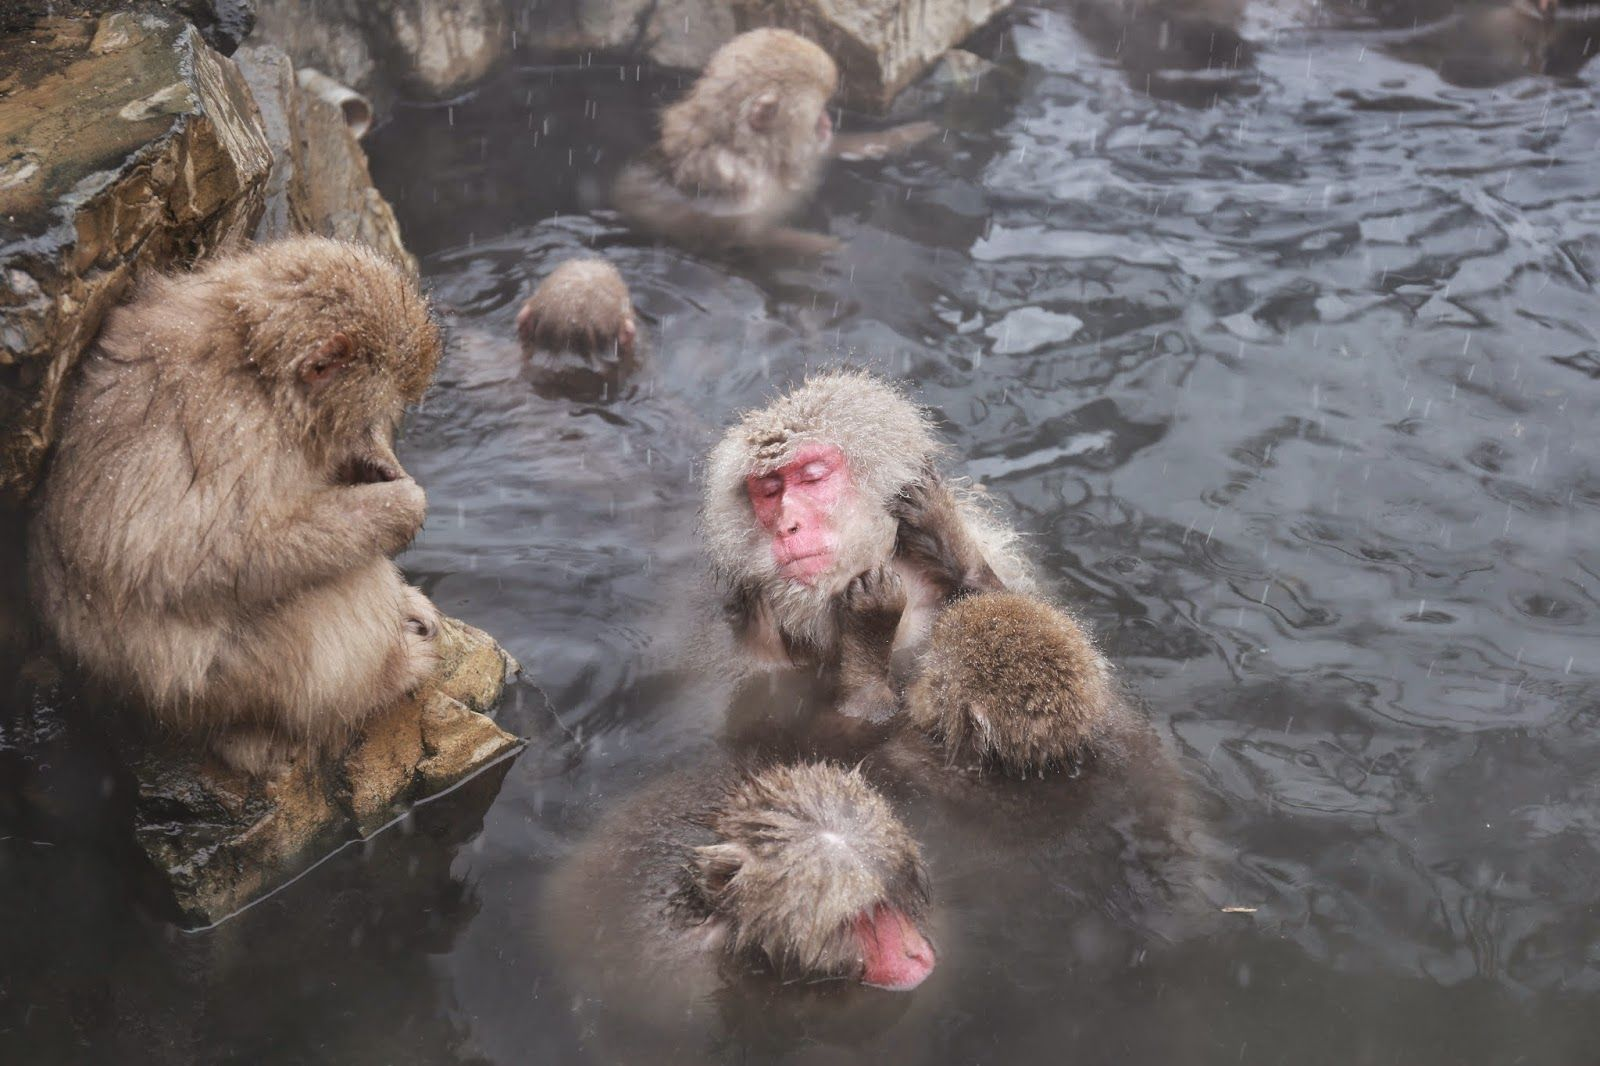 Snow Monkey, one of most famous Japan's winter attractions